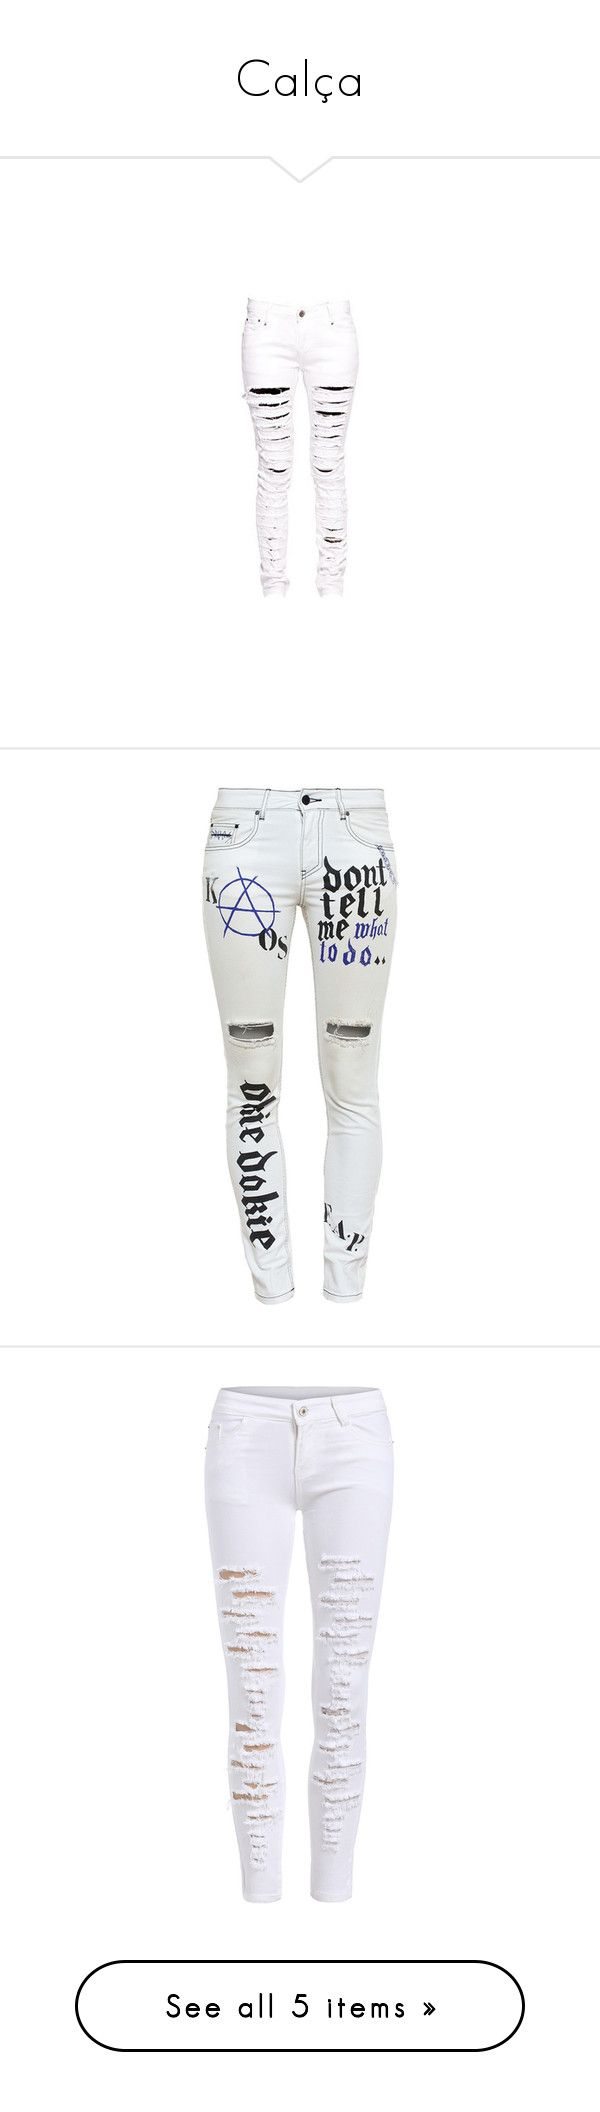 """""""Calça"""" by yaseumin ❤ liked on Polyvore featuring jeans, pants, bottoms, skinny jeans, distressed jeans, white distressed skinny jeans, destroyed jeans, white skinny leg jeans, destructed skinny jeans and pants and shorts"""